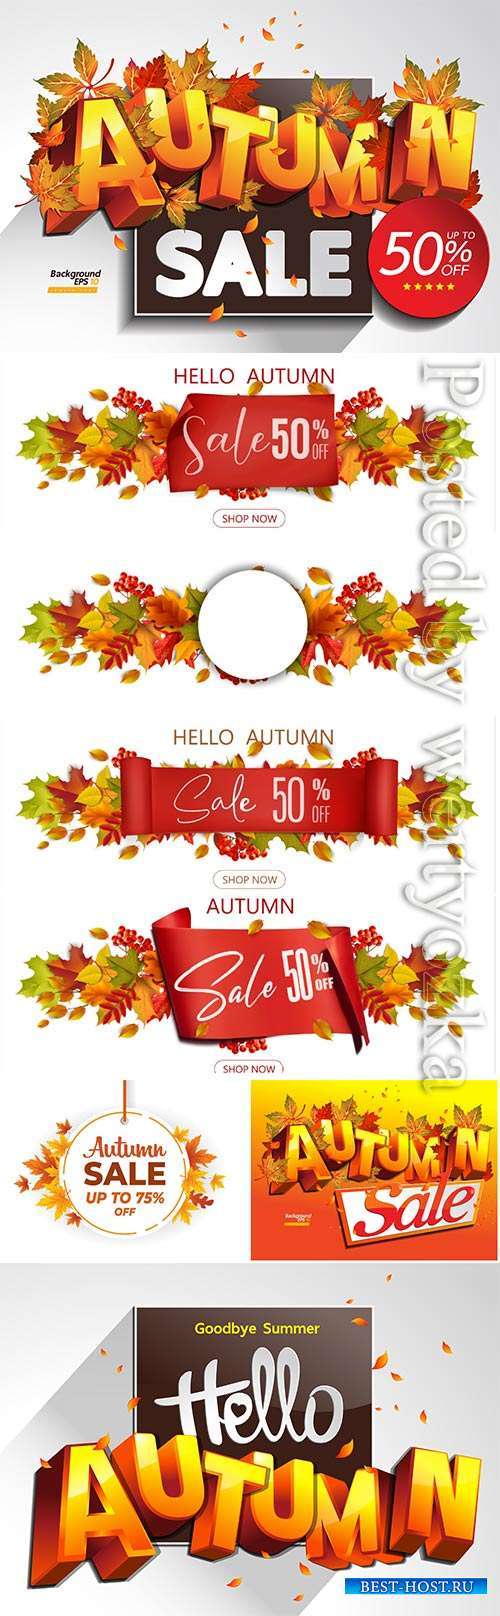 Autumn banner vector template with colorful autumn leaves